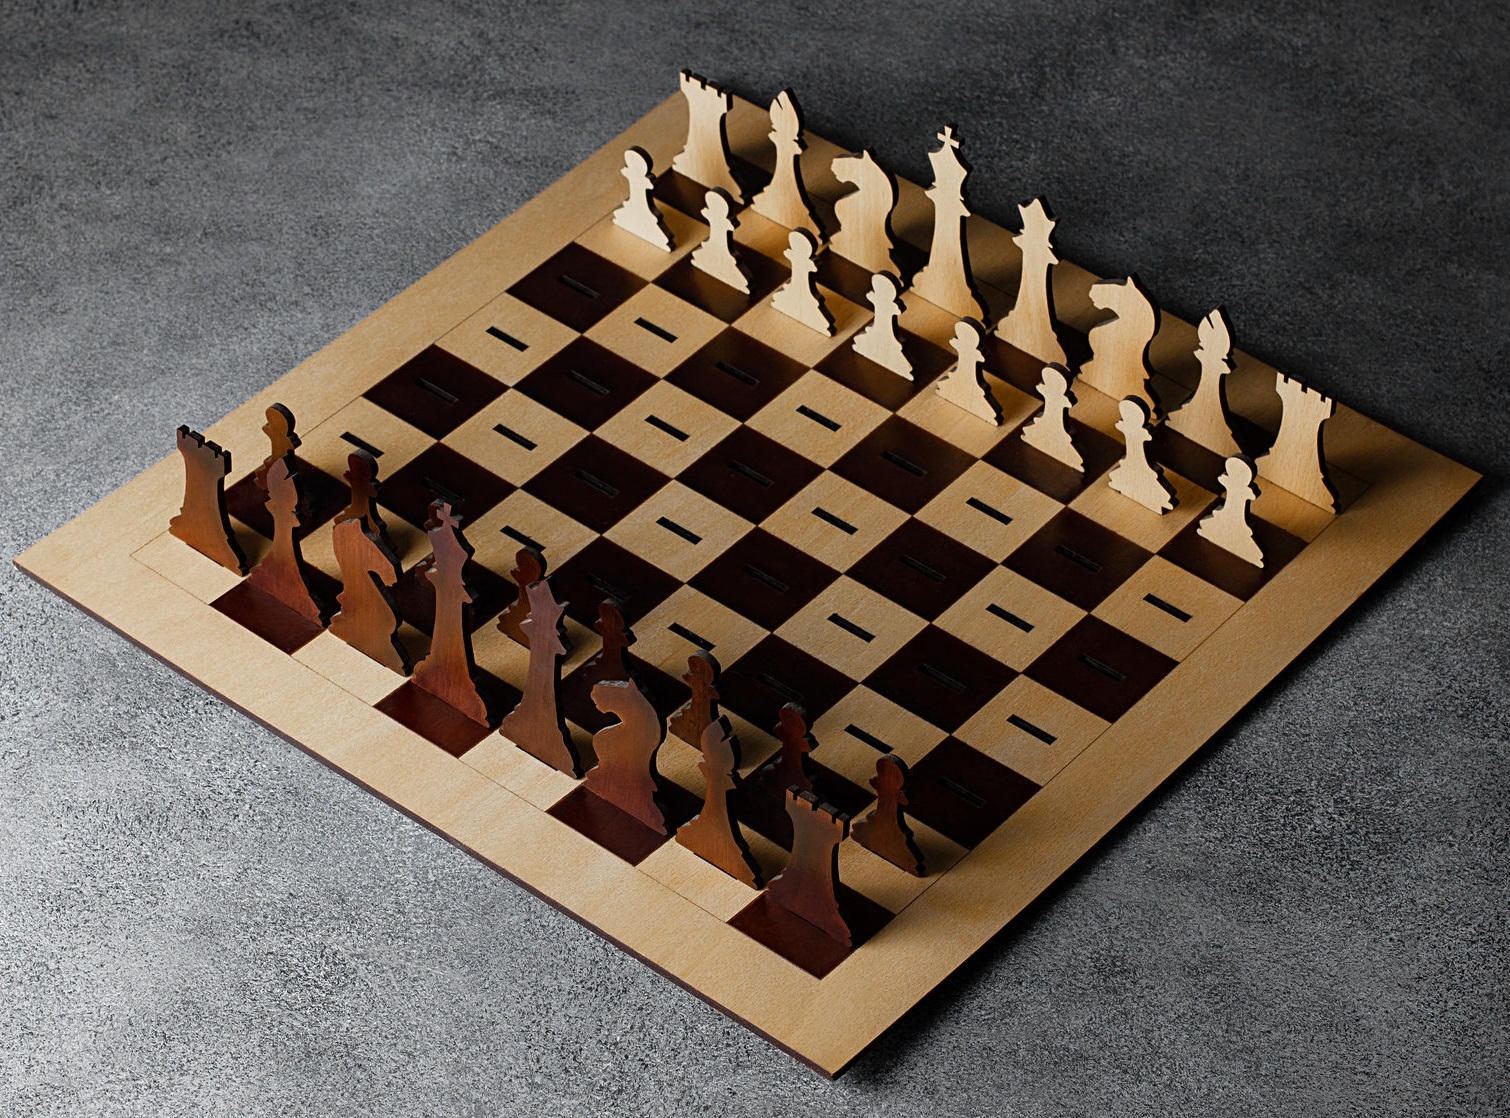 Laser Cut Wooden Chess Board & Pieces 4mm Free Vector